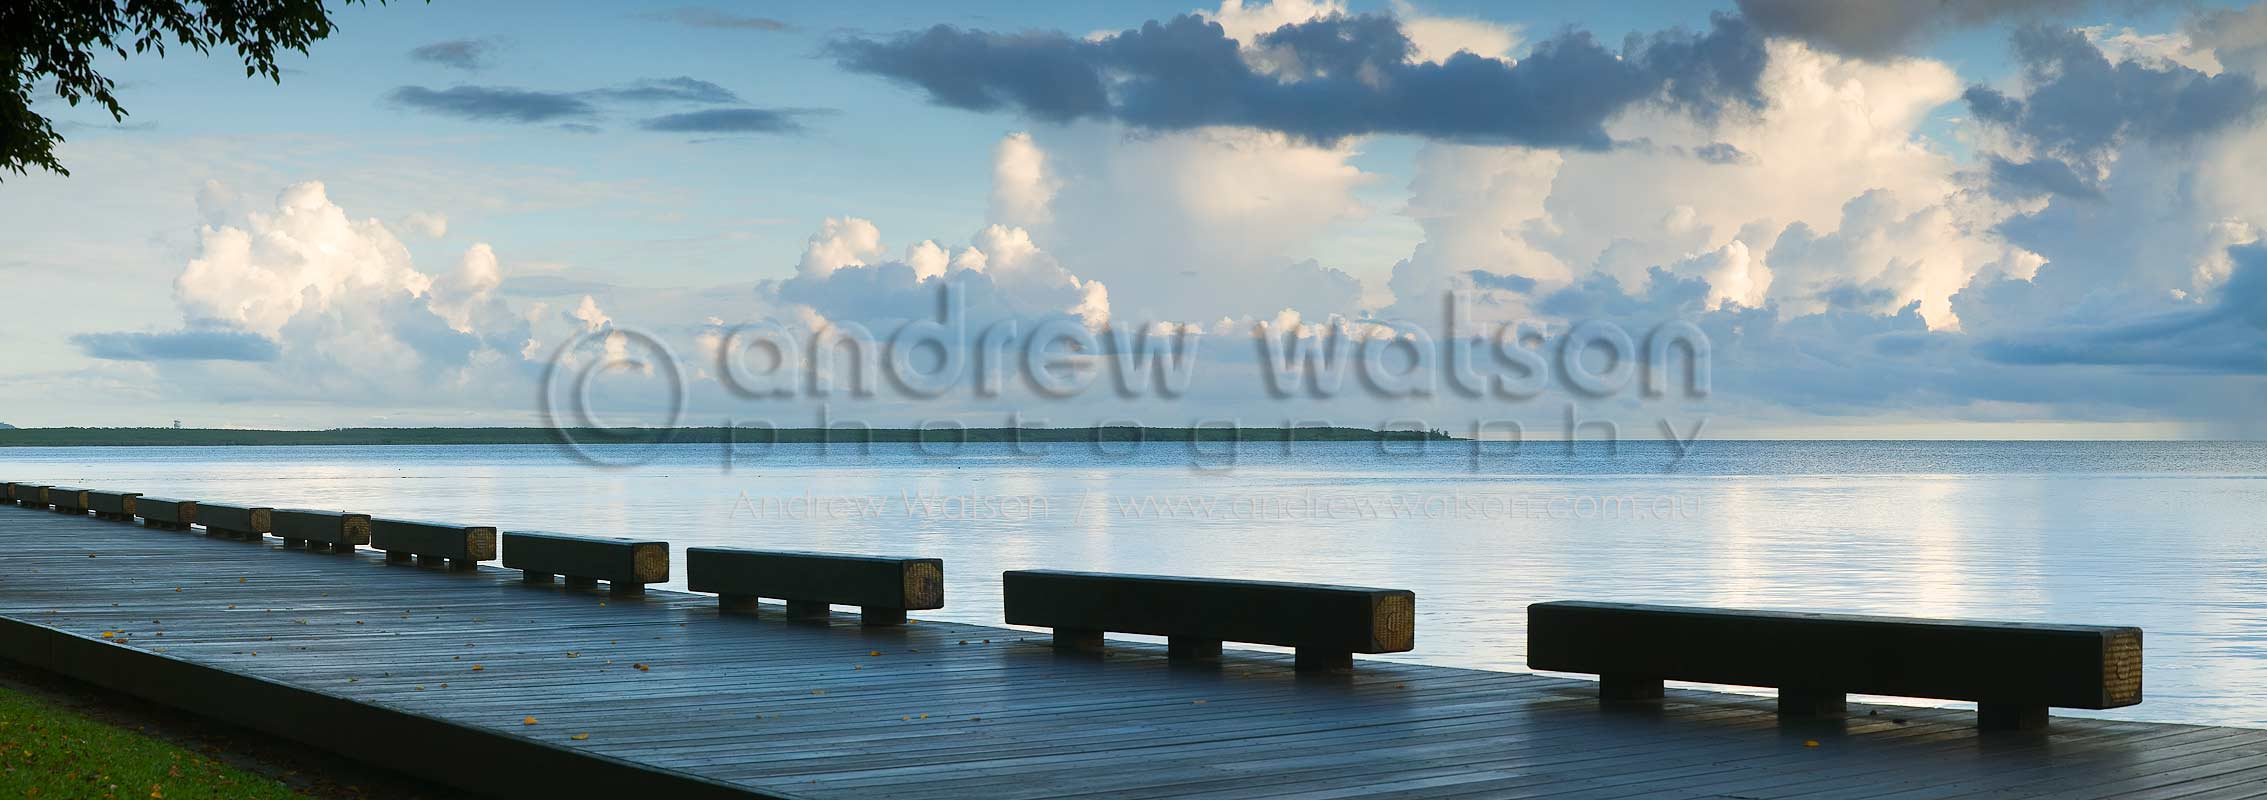 Esplanade boardwalkCairns, North QueenslandImage available for licensing or as a fine-art print... please enquire